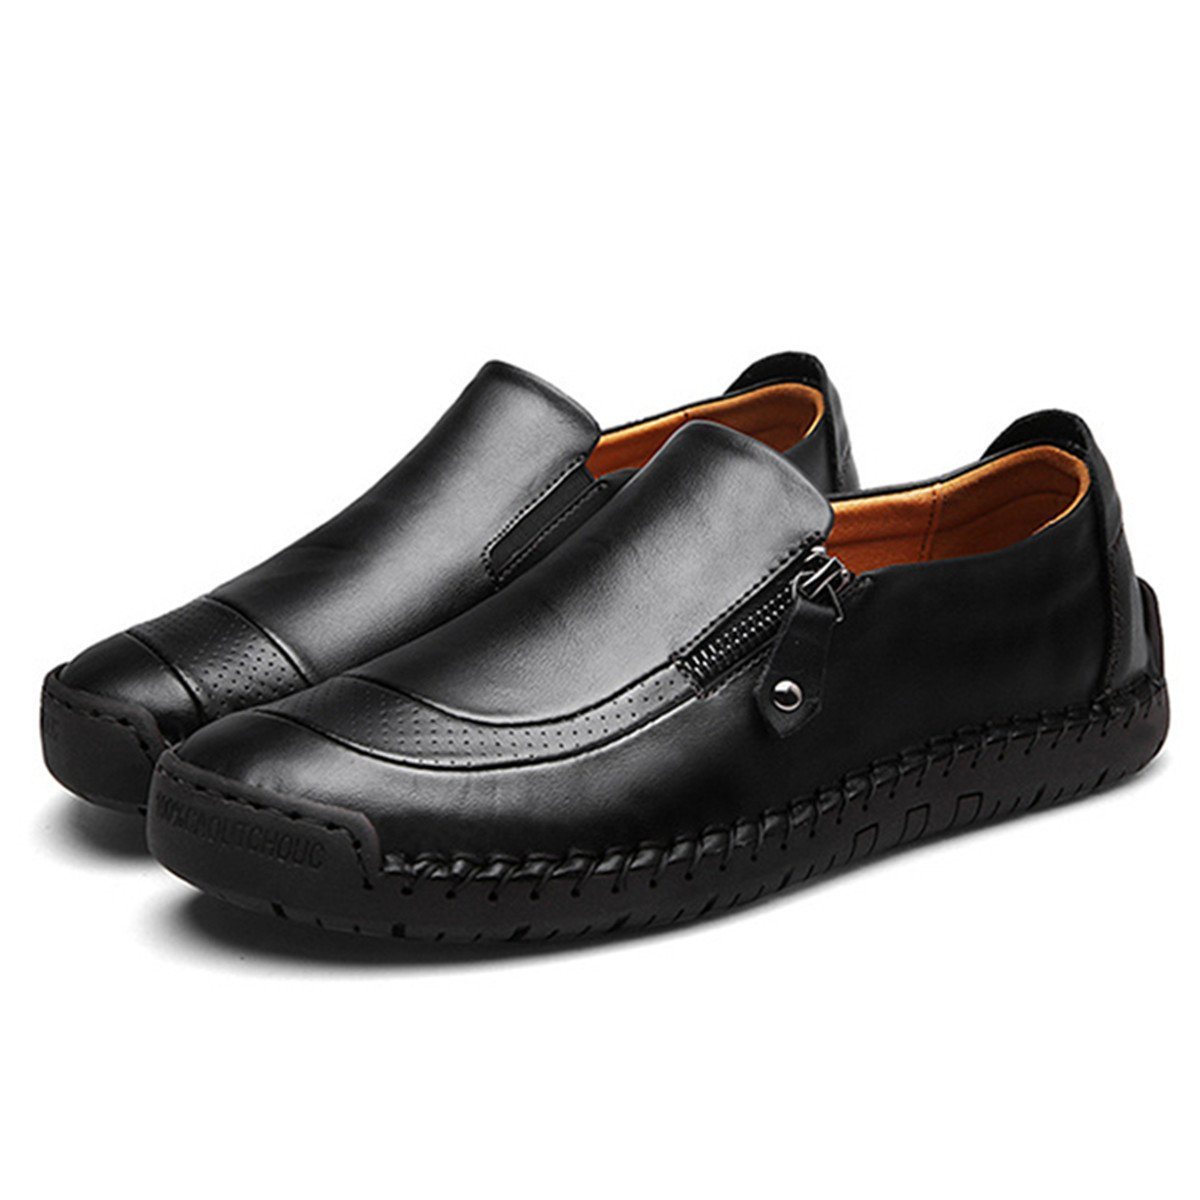 f477c3656 Amazon.com | gracosy Slip-On Shoes, Men's Leather Hand Stitching Zipper  Non-Slip Oxford Casual Leather Loafers Driving Walking Shoes | Loafers &  Slip-Ons